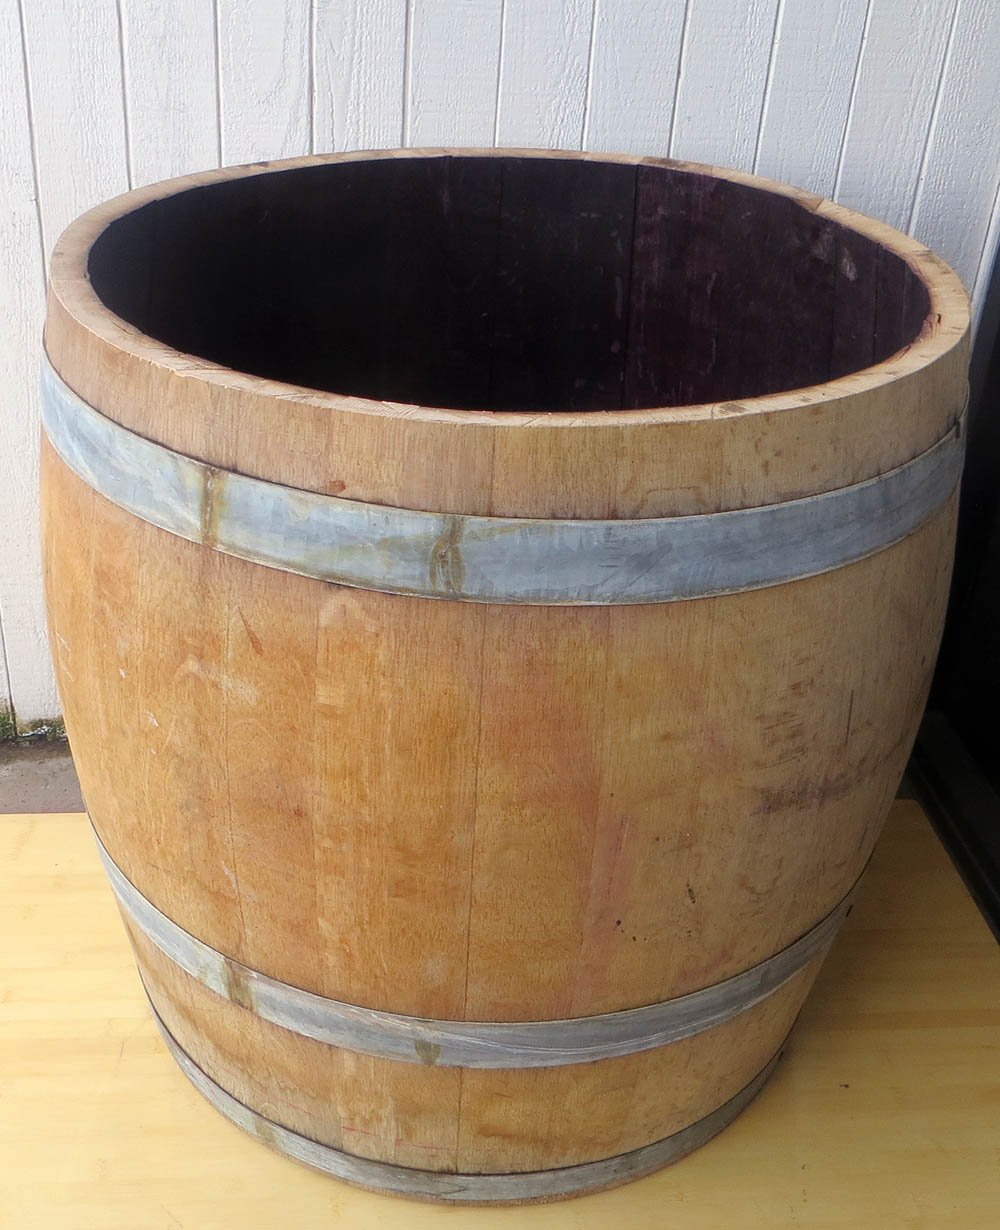 MGP Tall Genuine Urn Syle Oak Wood Barrel Planter for Tree or Shrub Planting, Cedar wood bottom, 27''H x 27''W